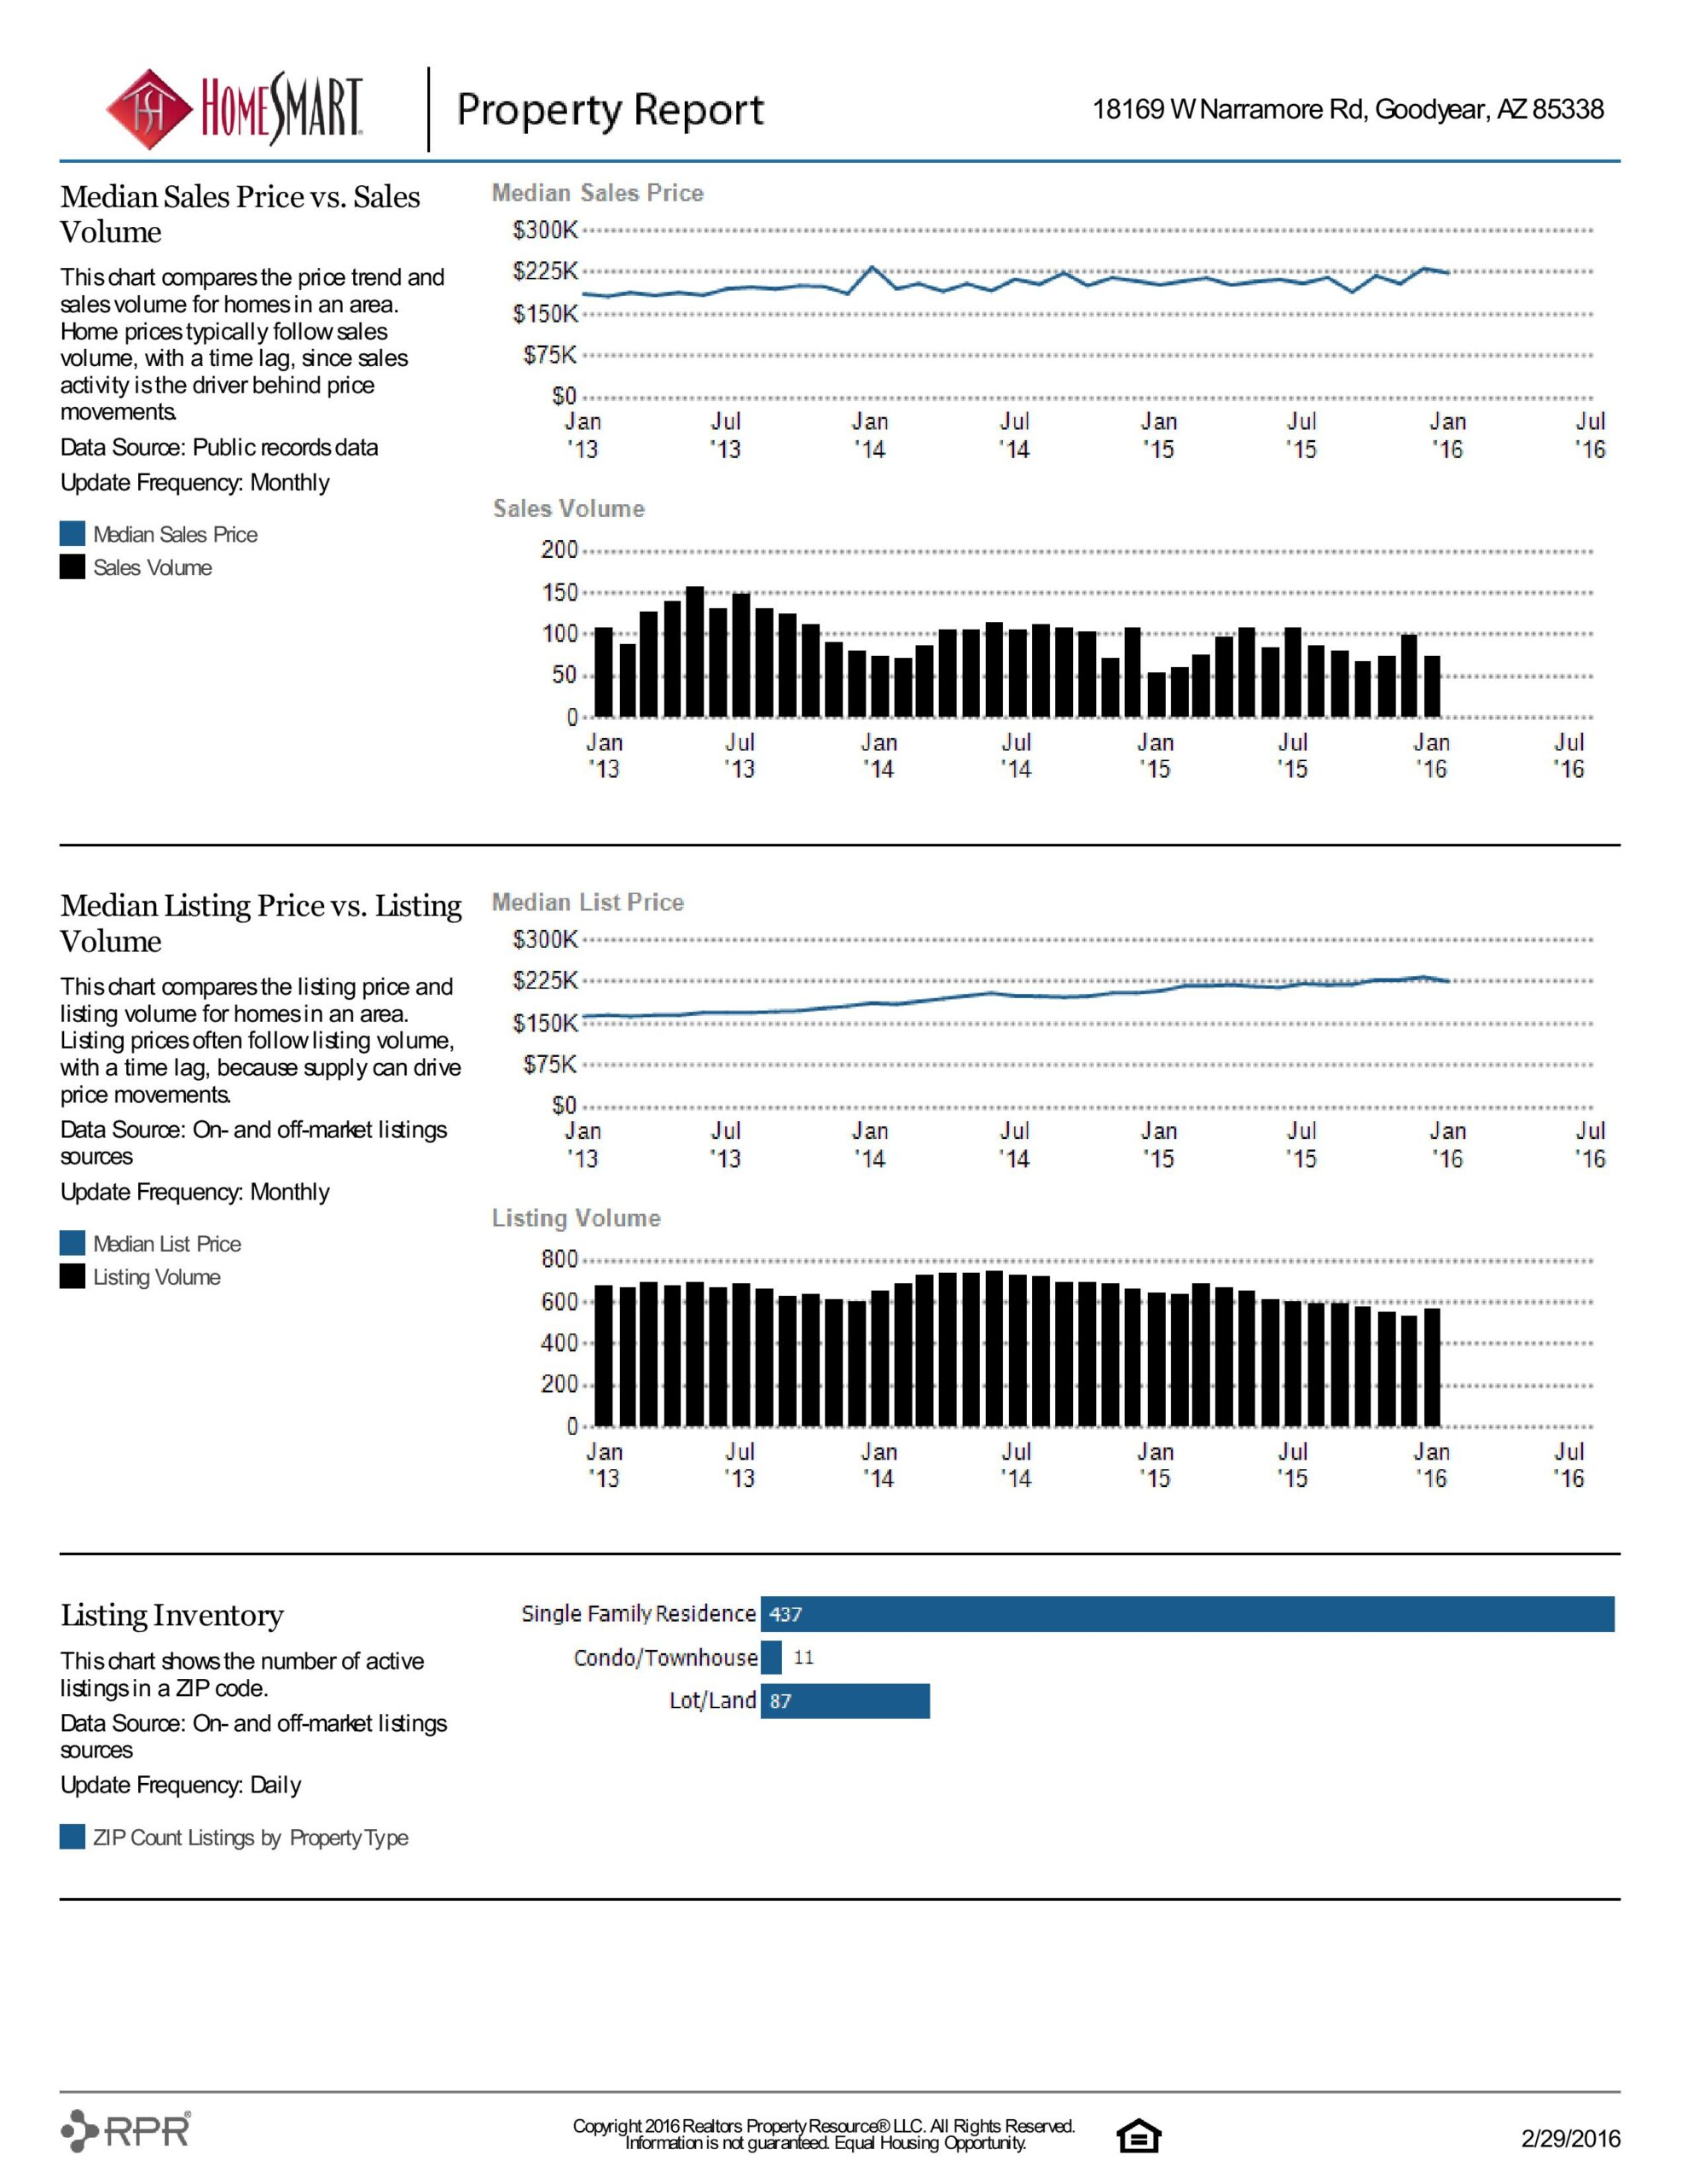 18169 W NARRAMORE RD PROPERTY REPORT-page-017